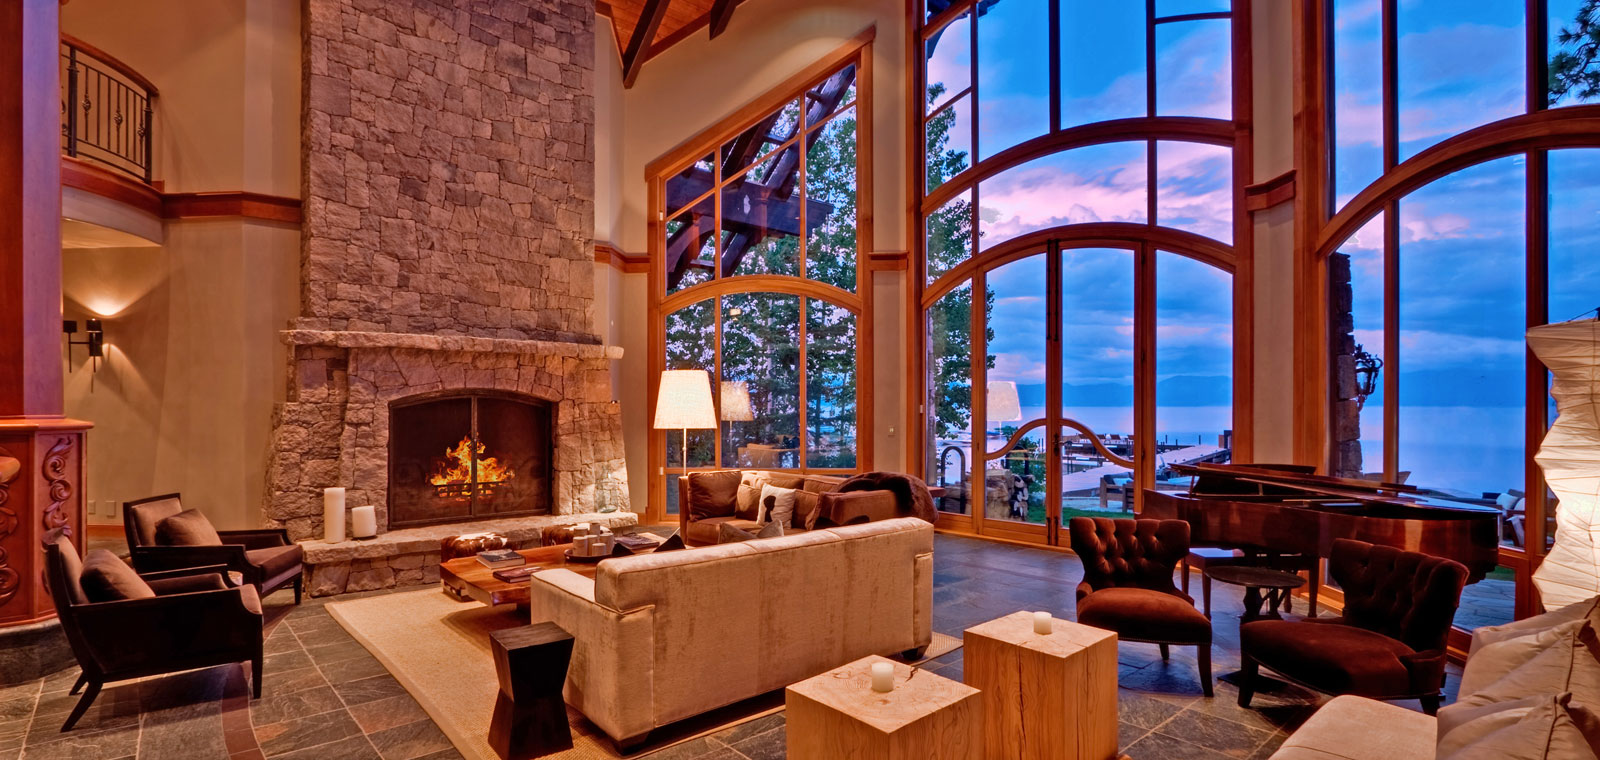 Fireplace View - Duane Wright Realty